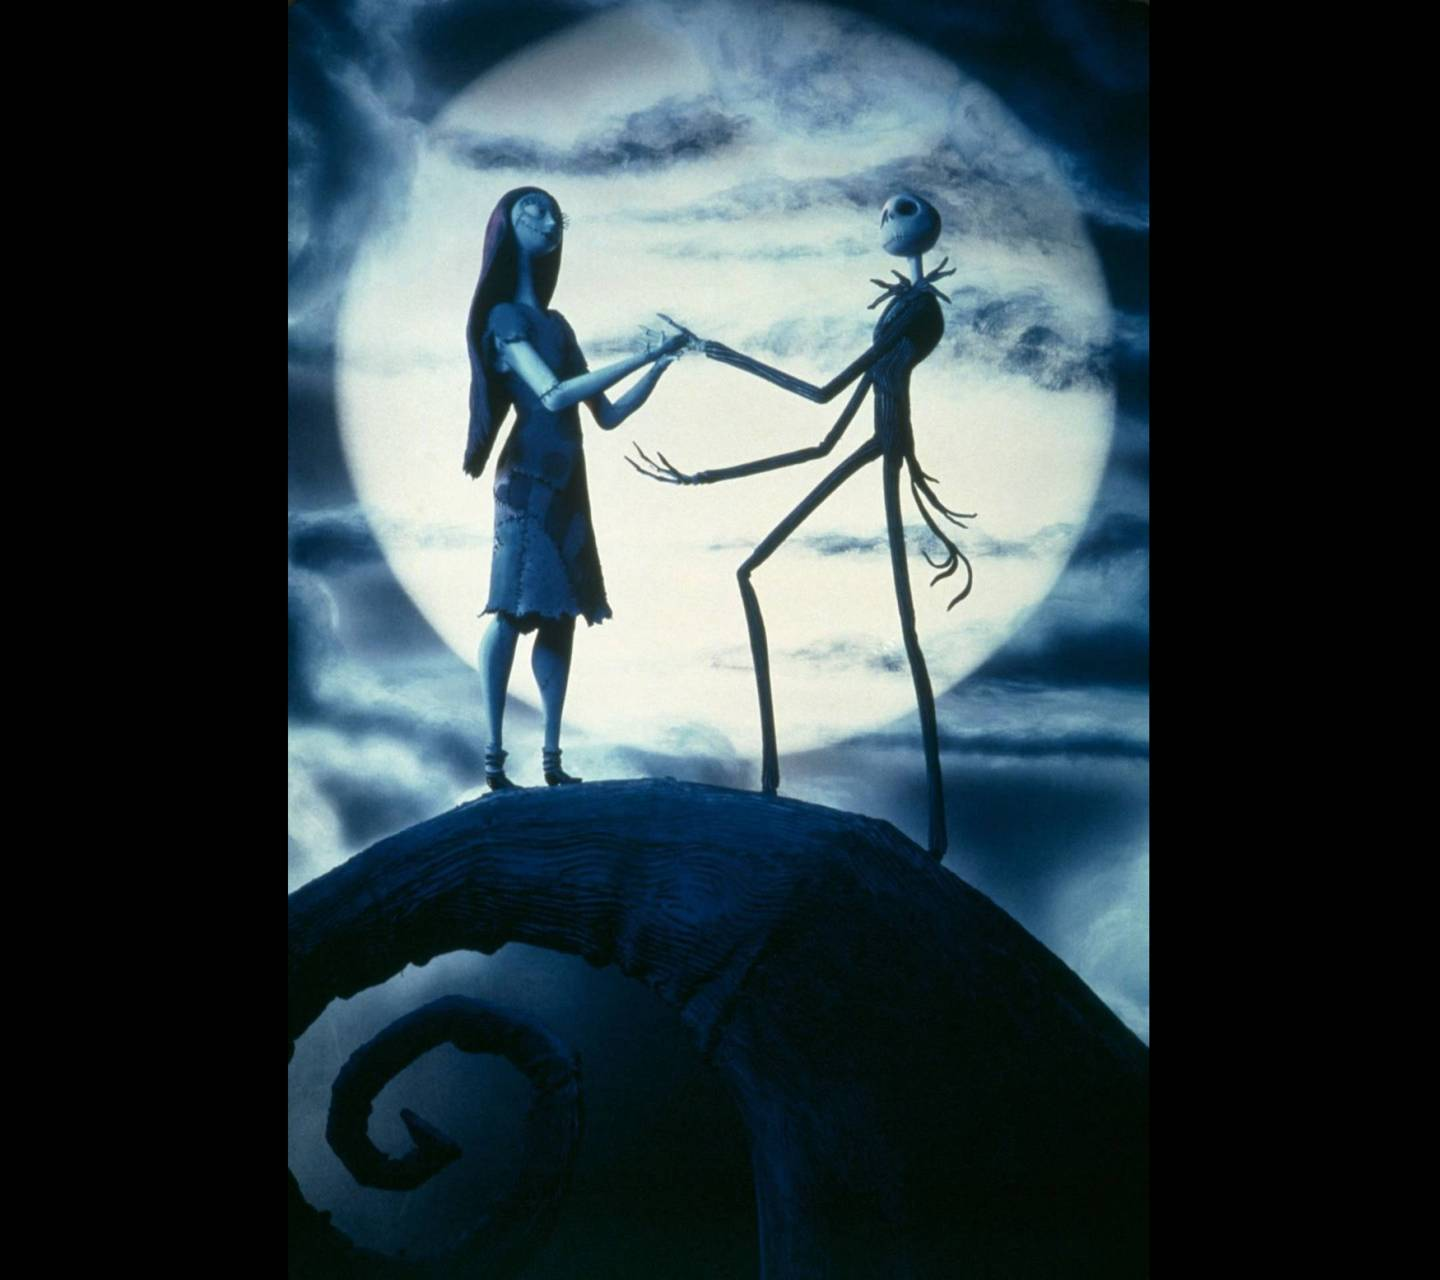 Jack and Sally Wallpaper by T_Regis - 57